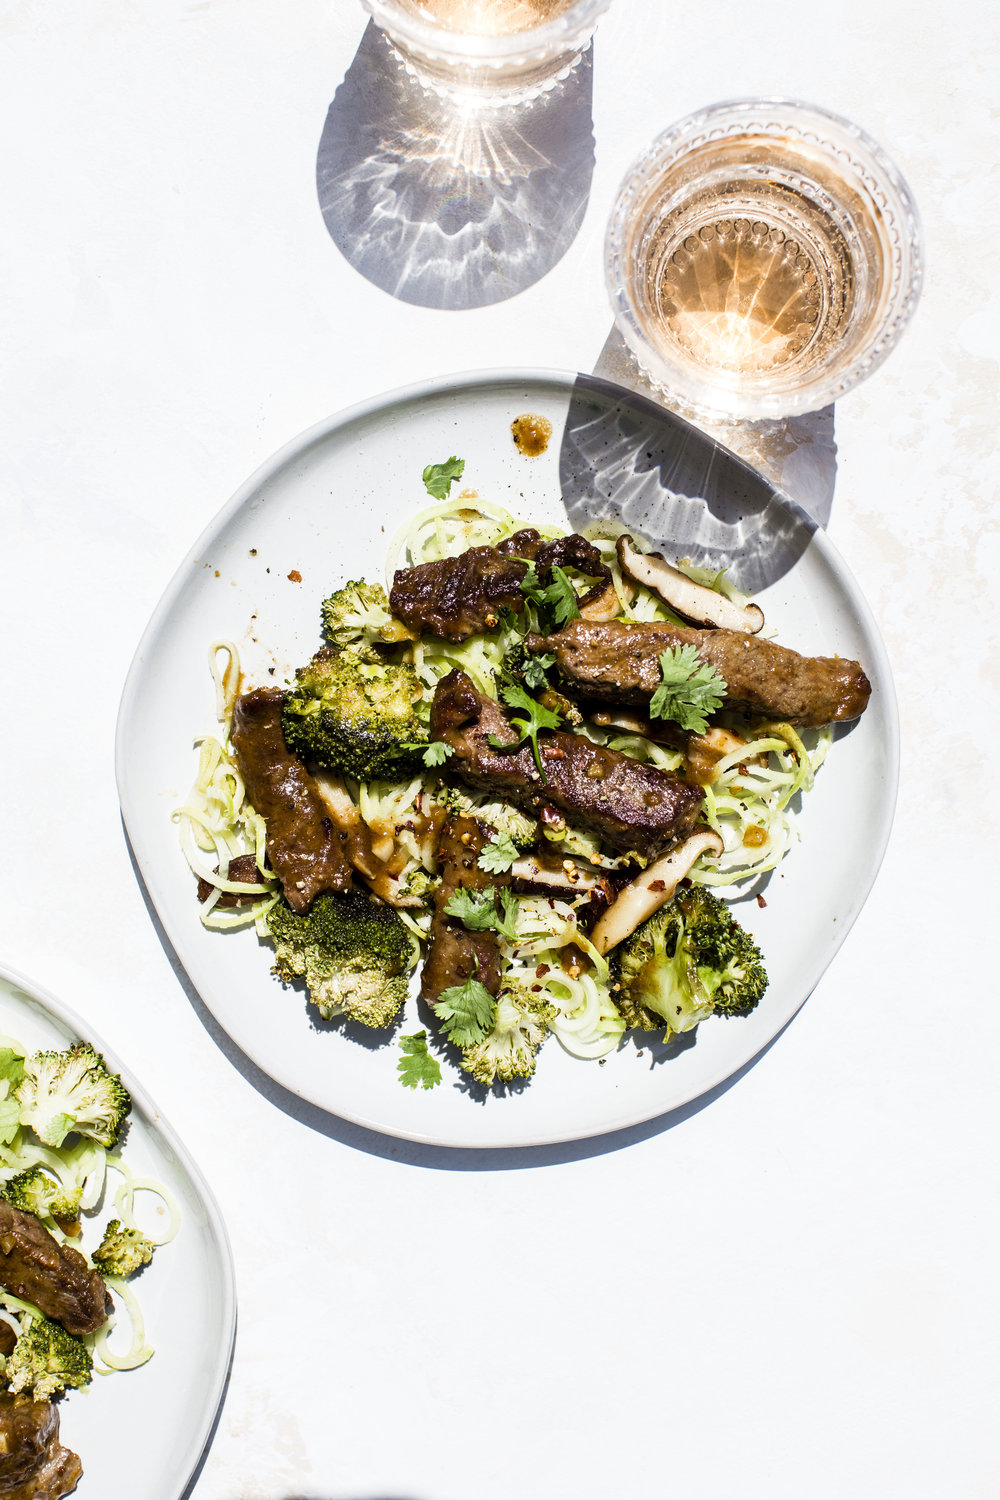 Paleo Beef Broccoli with Broccoli Stem Noodles 1 copy.jpg